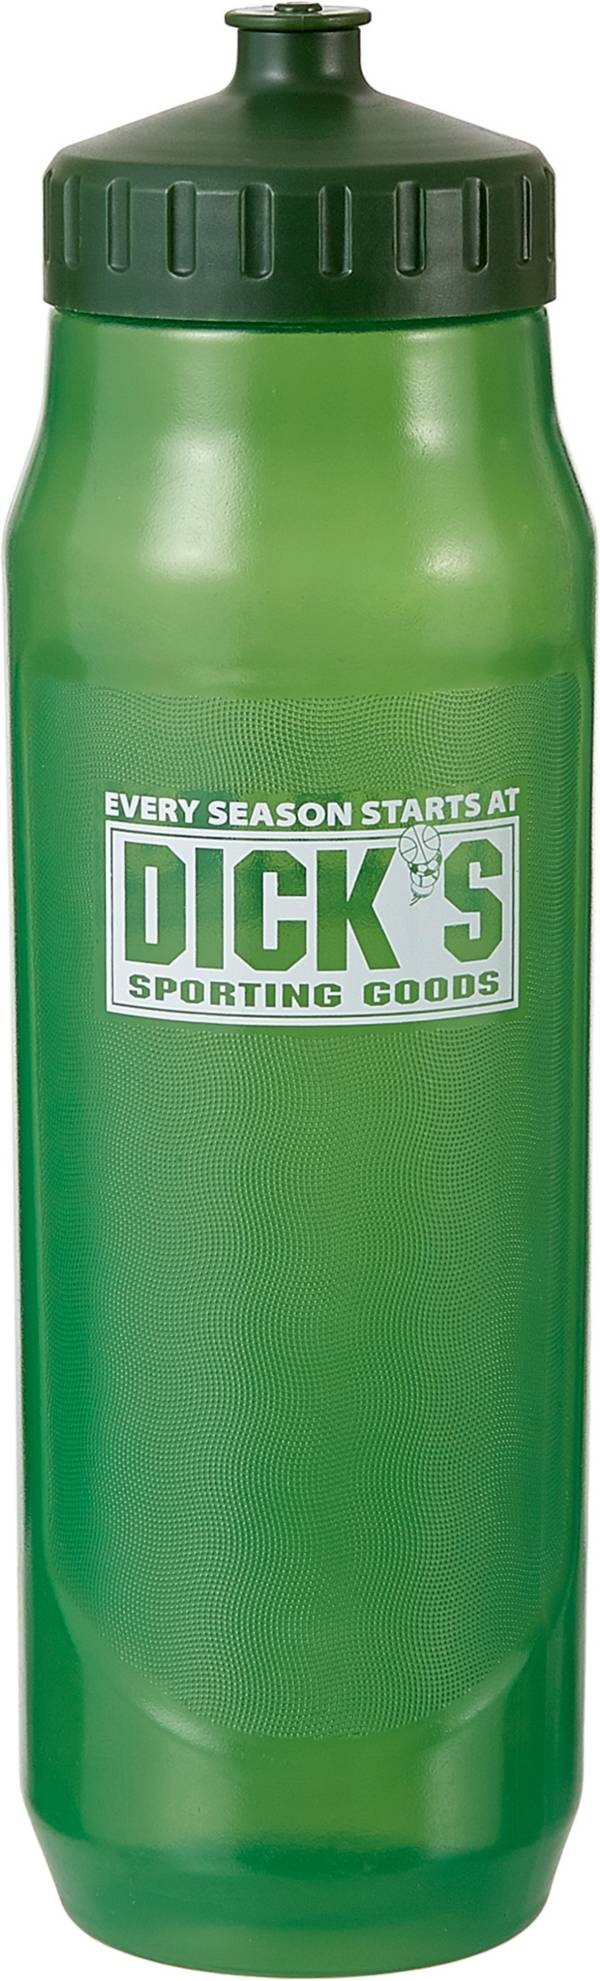 DICK'S Sporting Goods Colorful Push Cap 32 oz. Squeeze Bottle product image